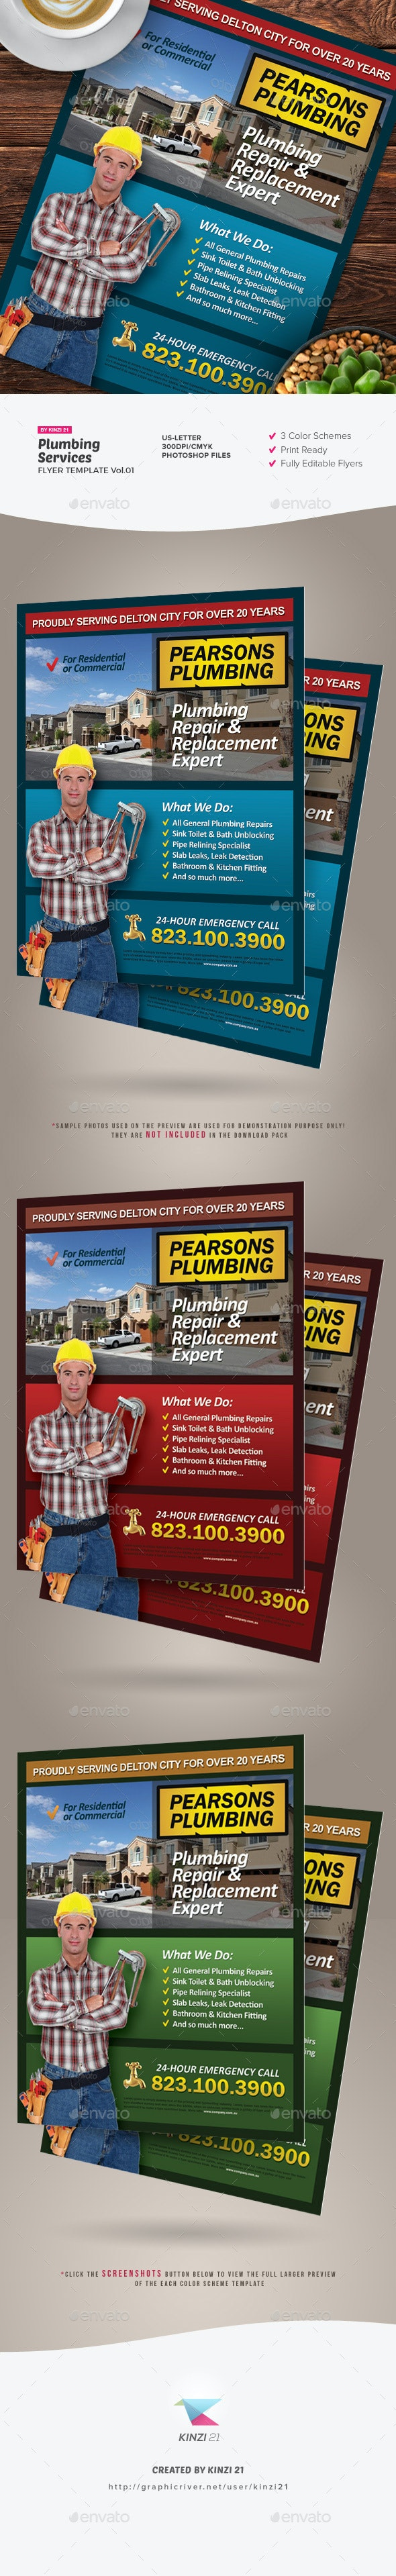 Plumbing Services Flyer Vol.01 - Corporate Flyers